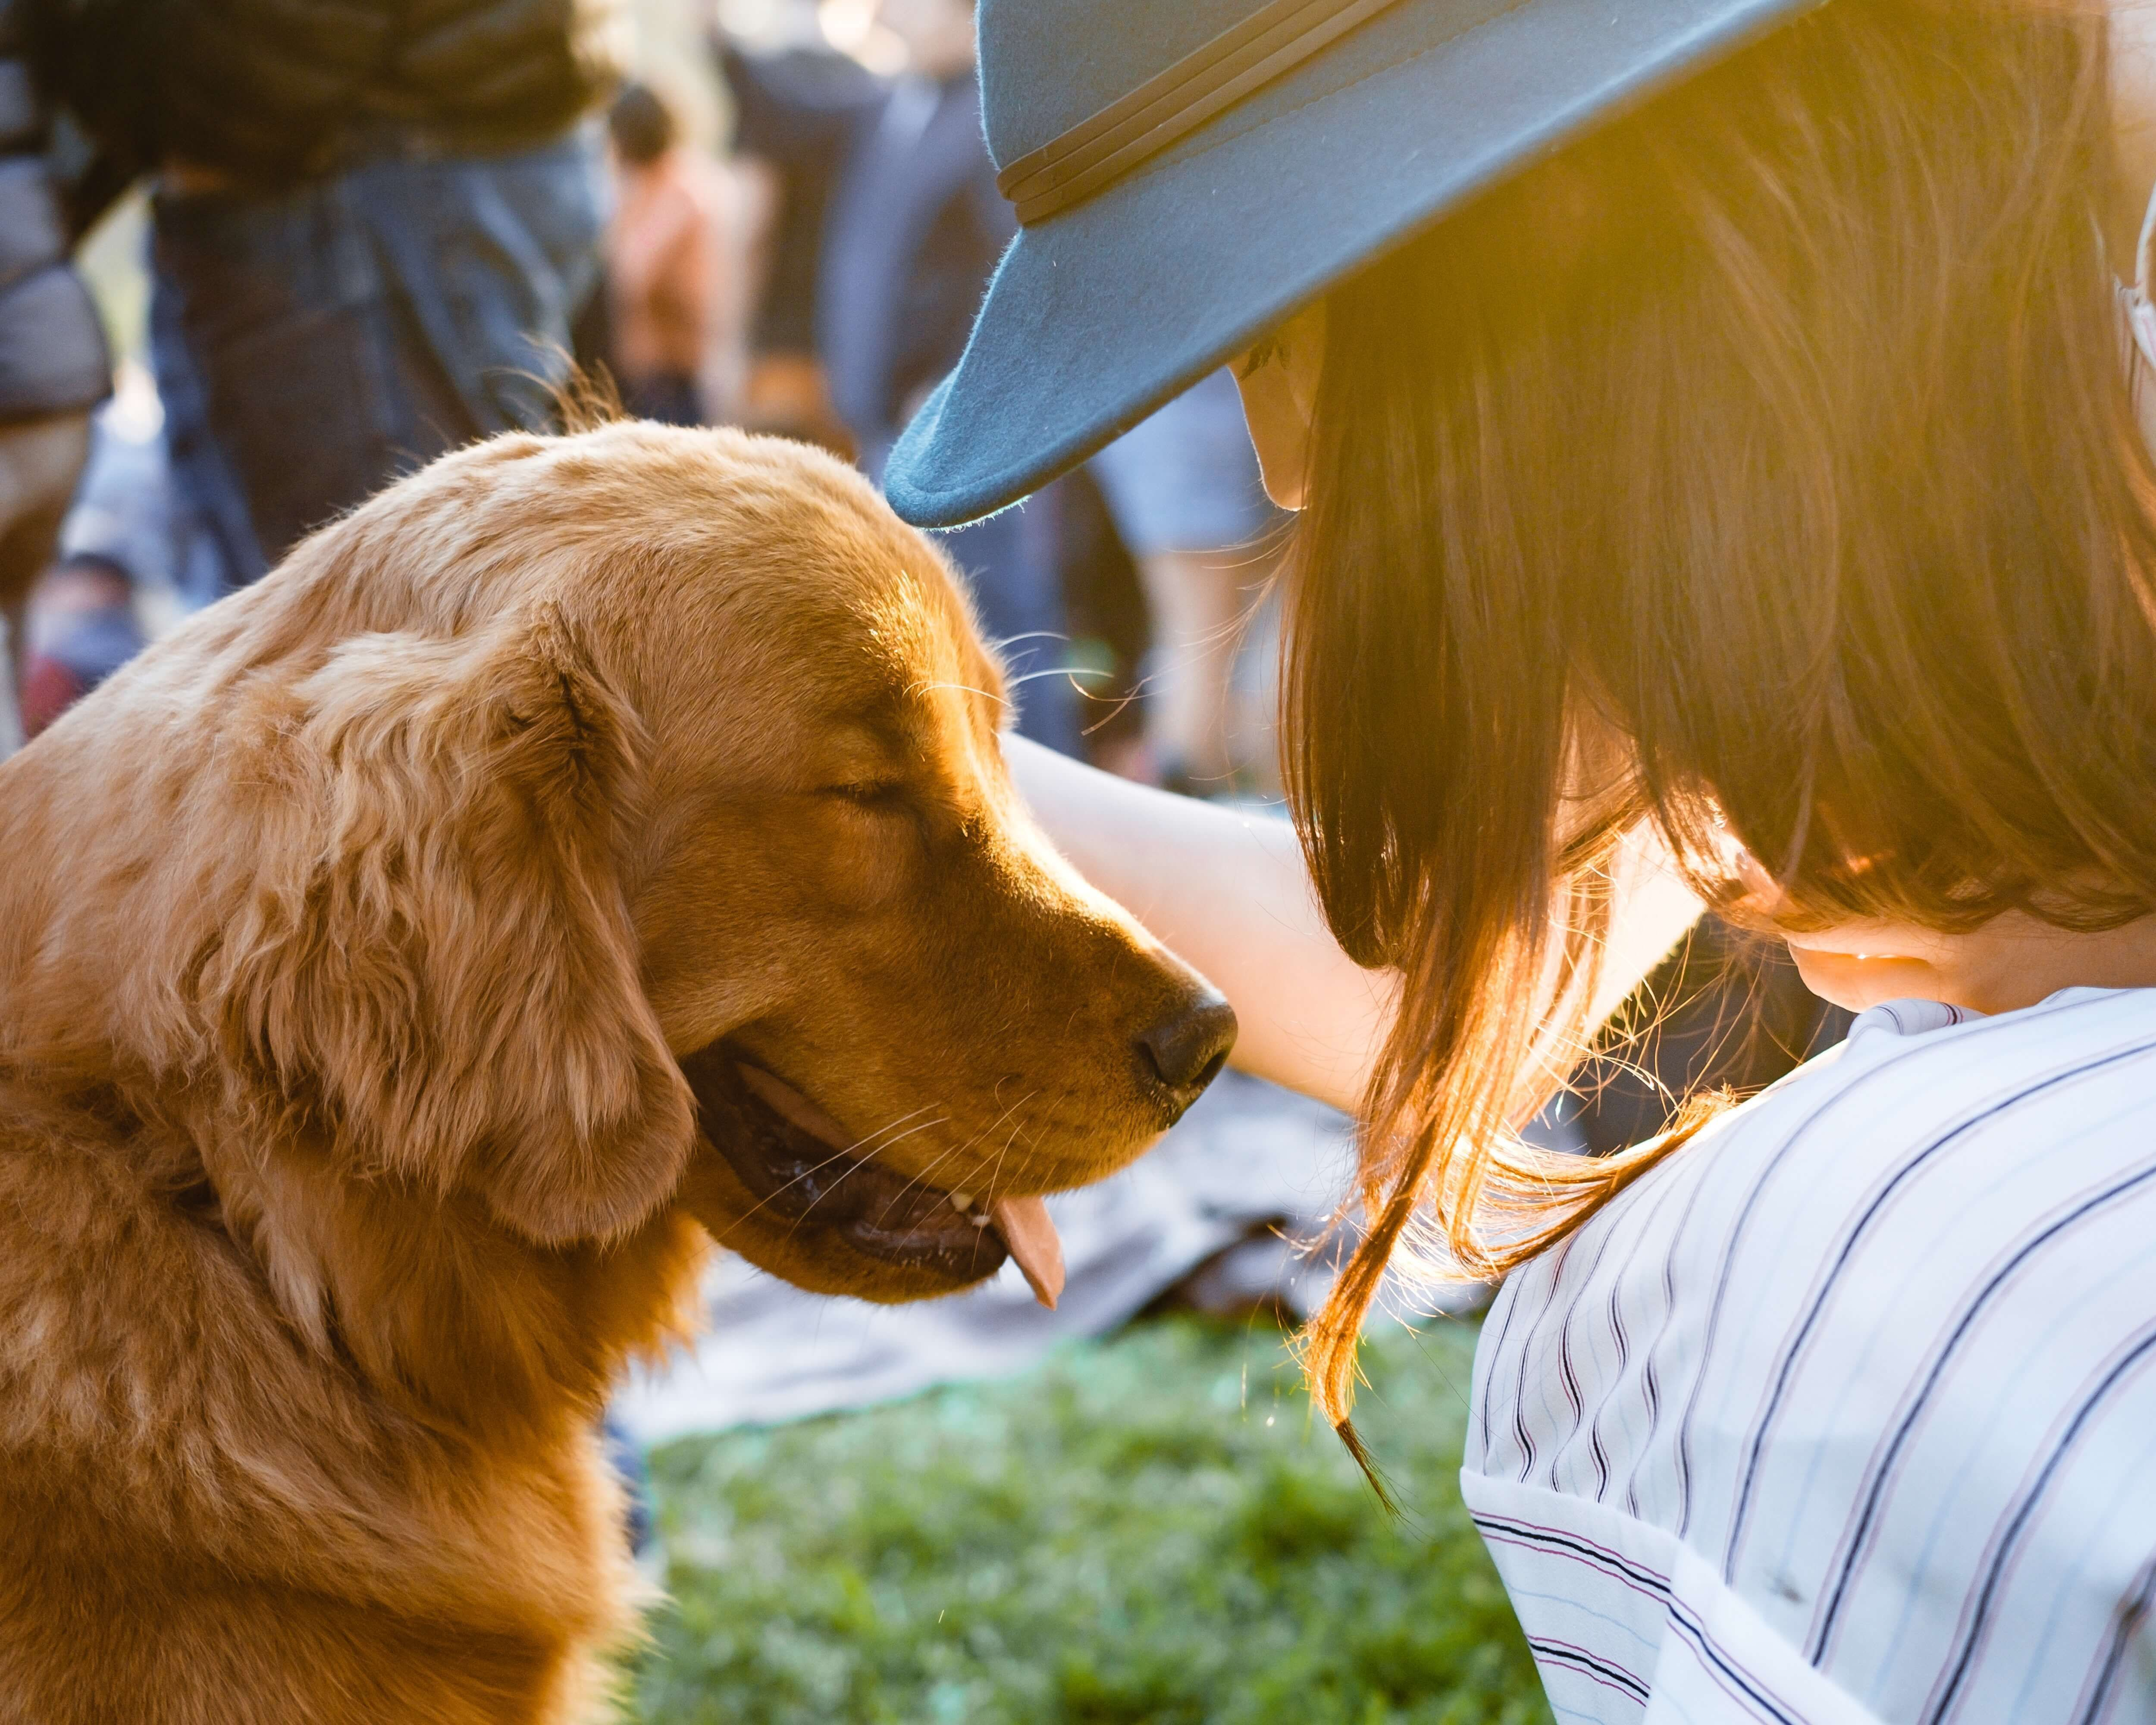 How To Help a Dog That's Missed Early Socialization